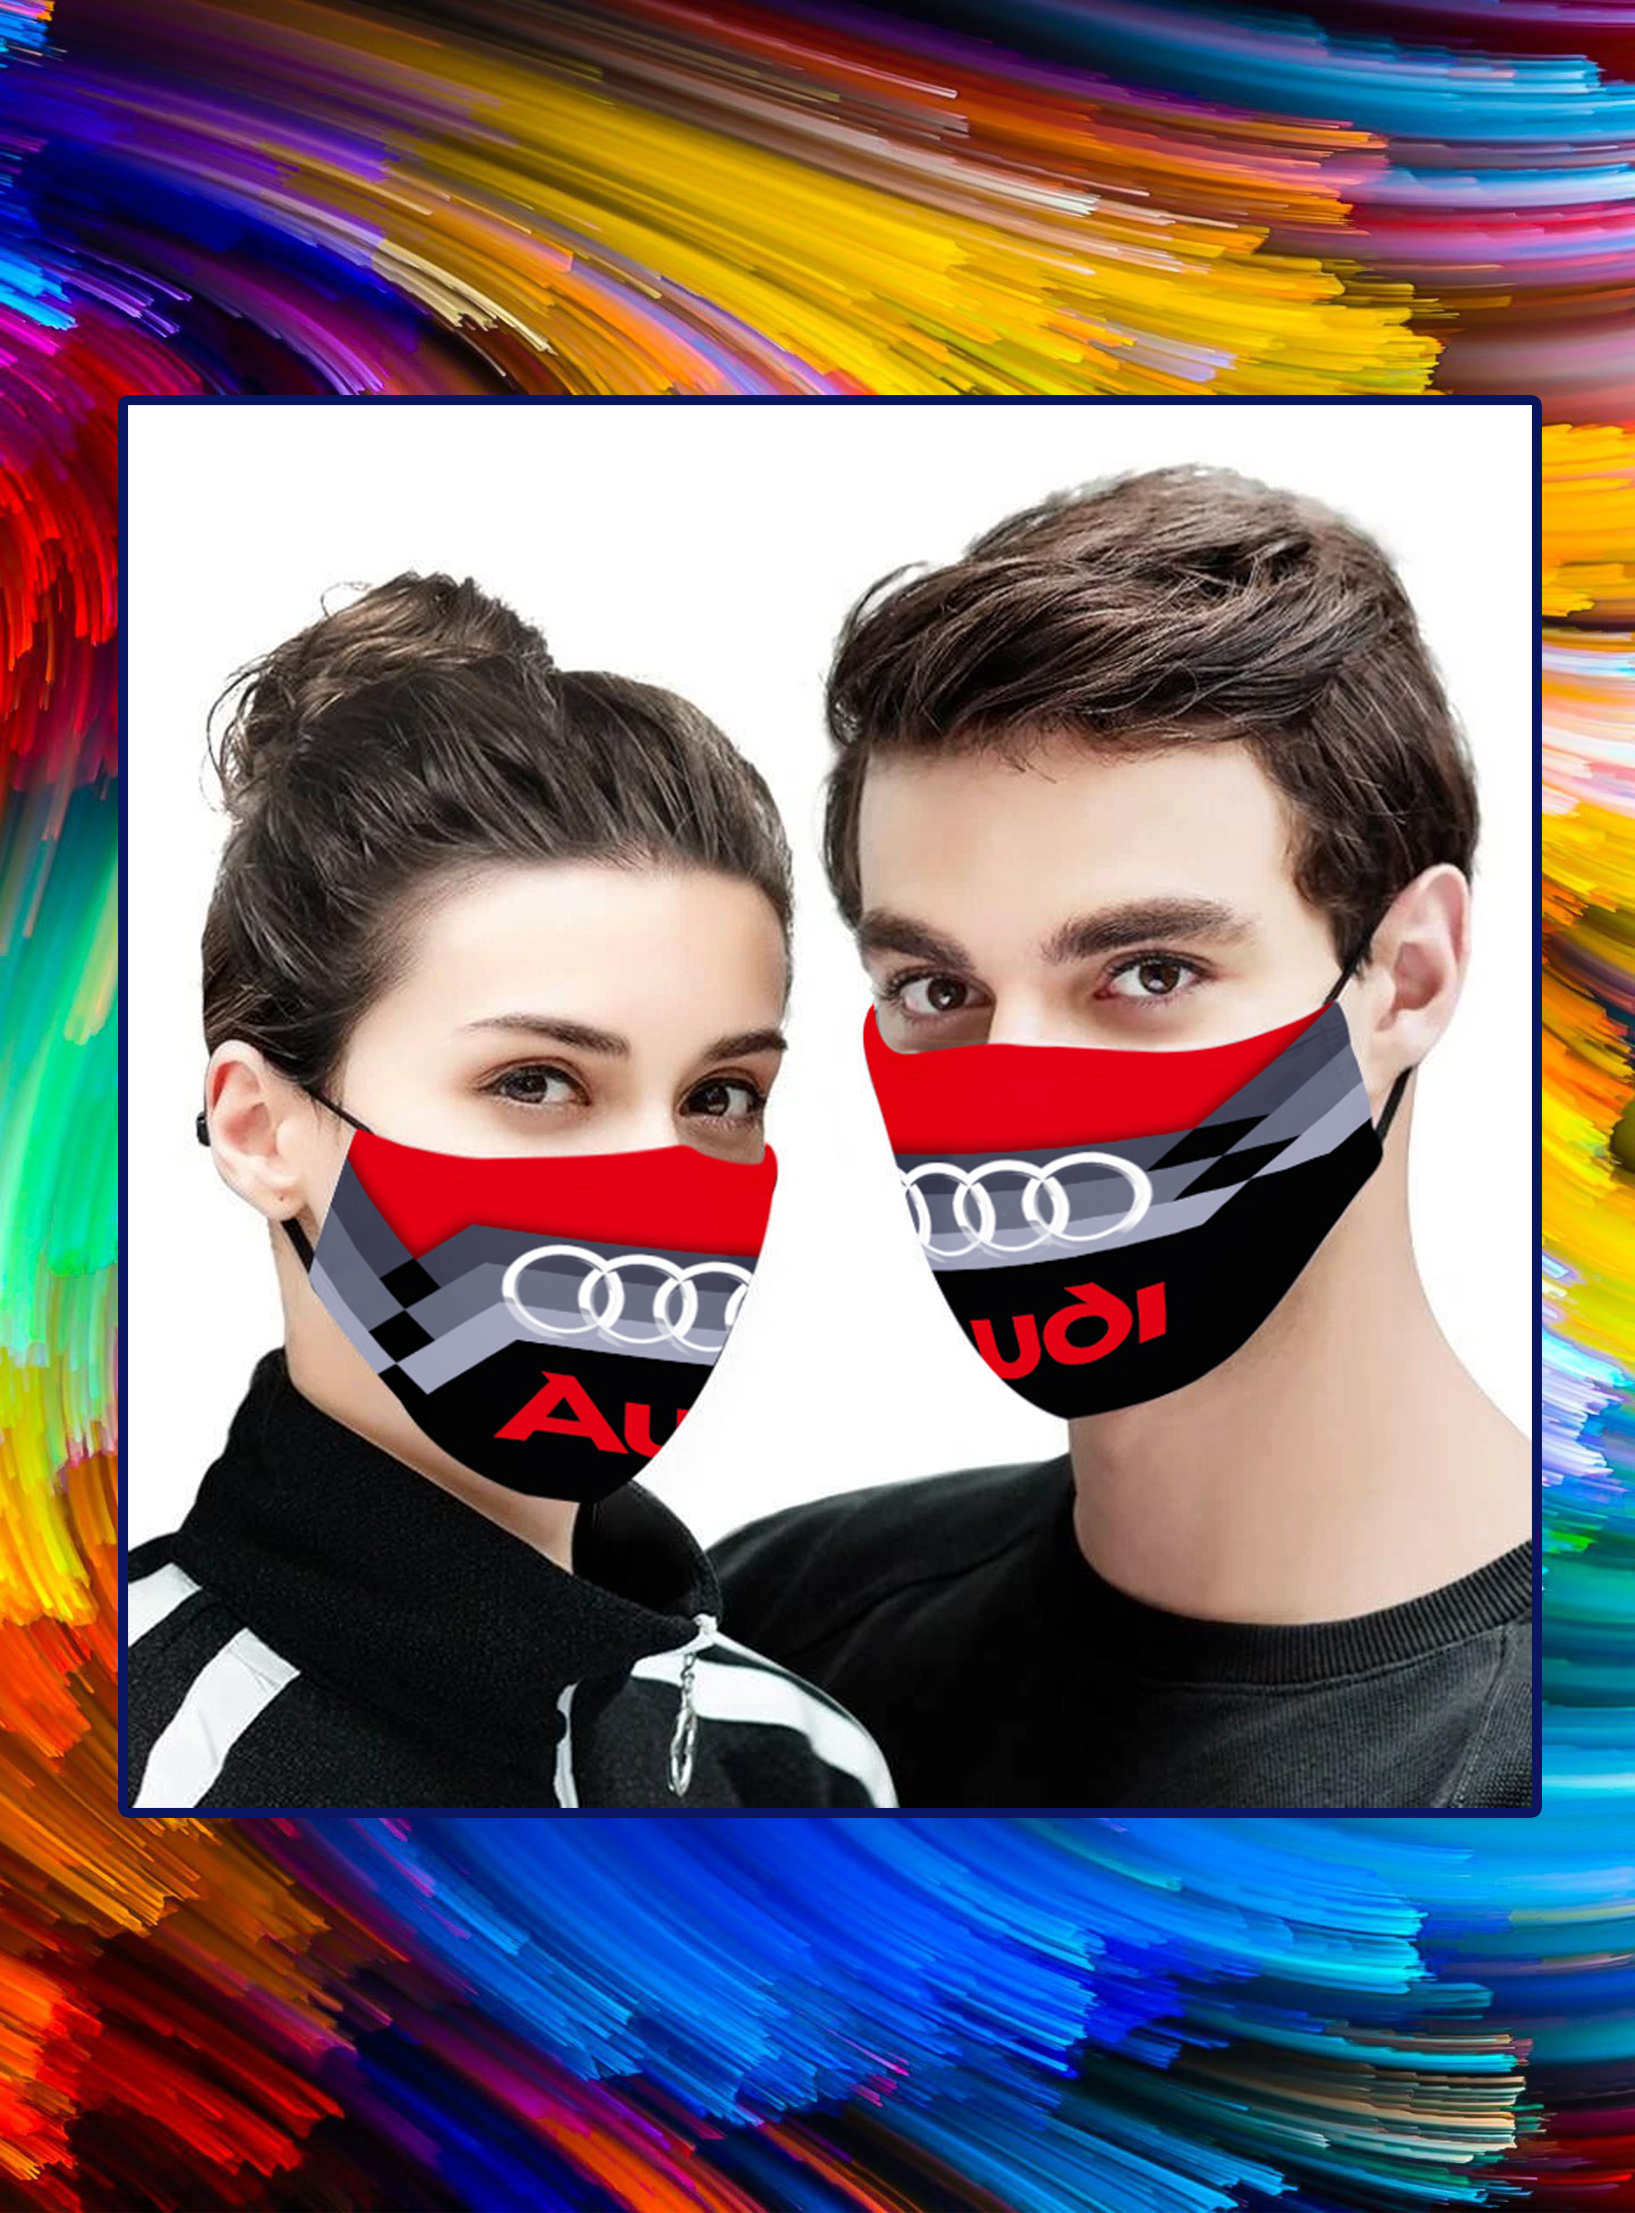 Audi face mask - pic 1